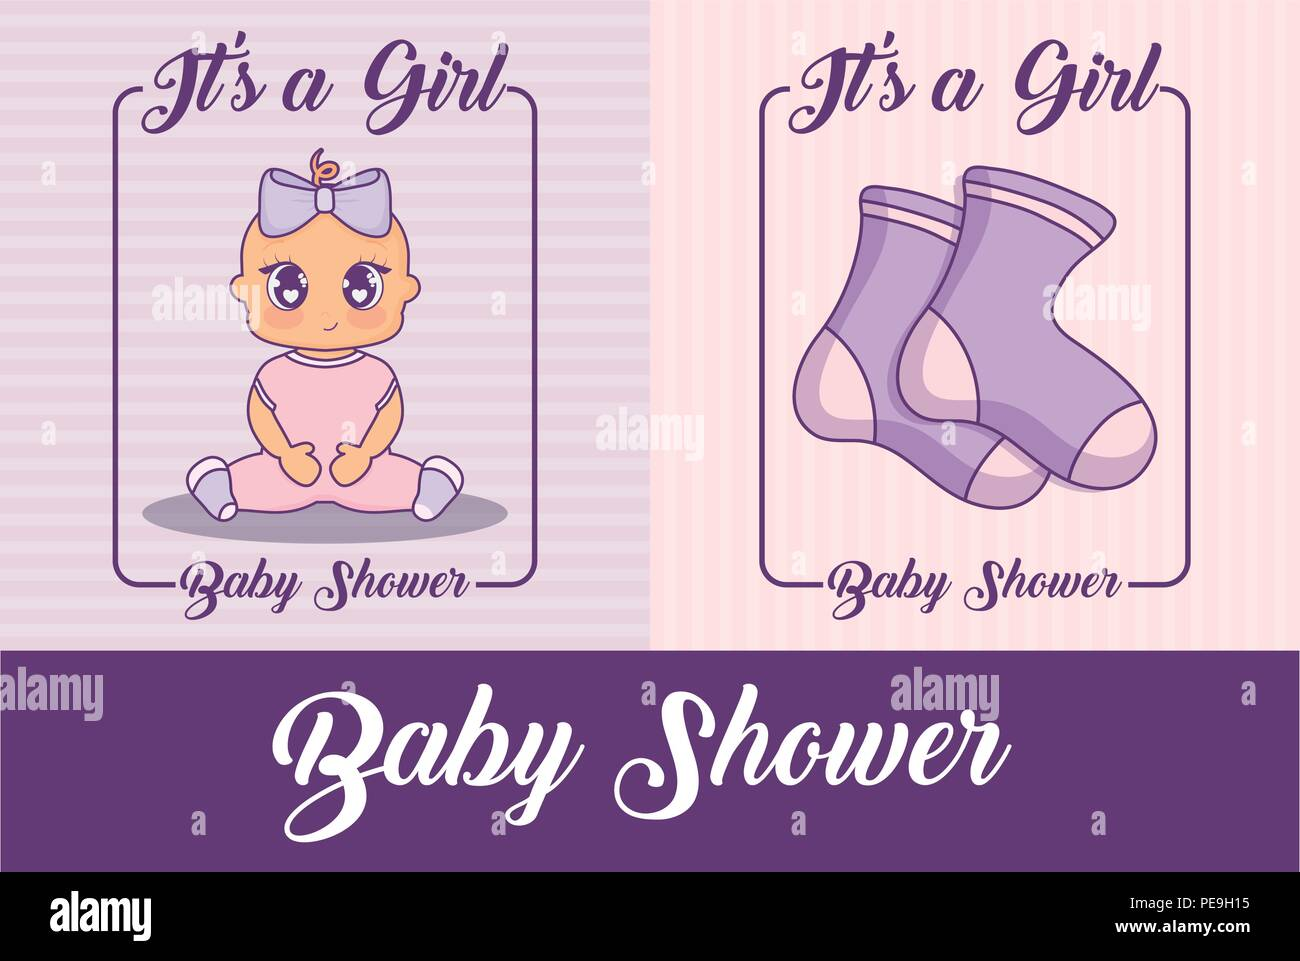 baby shower design with cute baby girls and socks over colorful background, vector illustration - Stock Vector